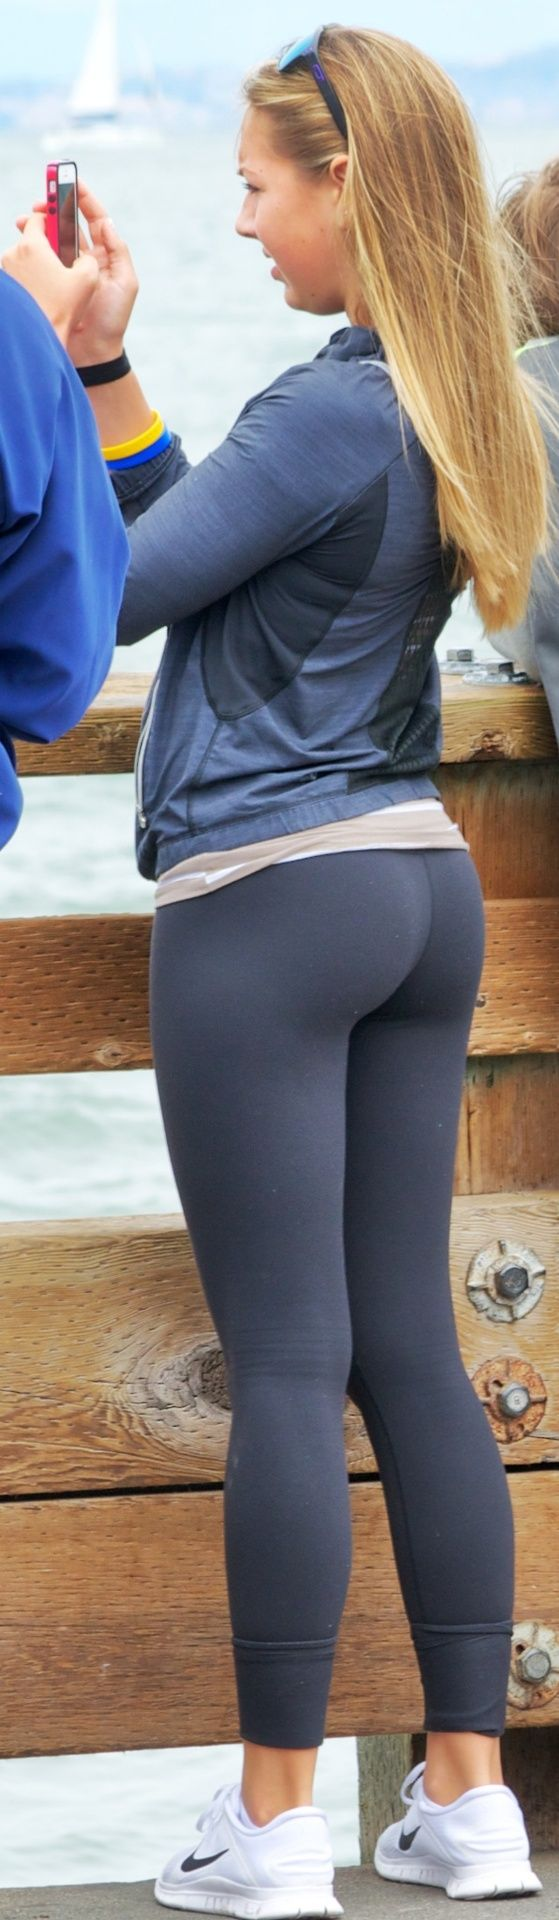 Hot nude asian girls wearing leggings